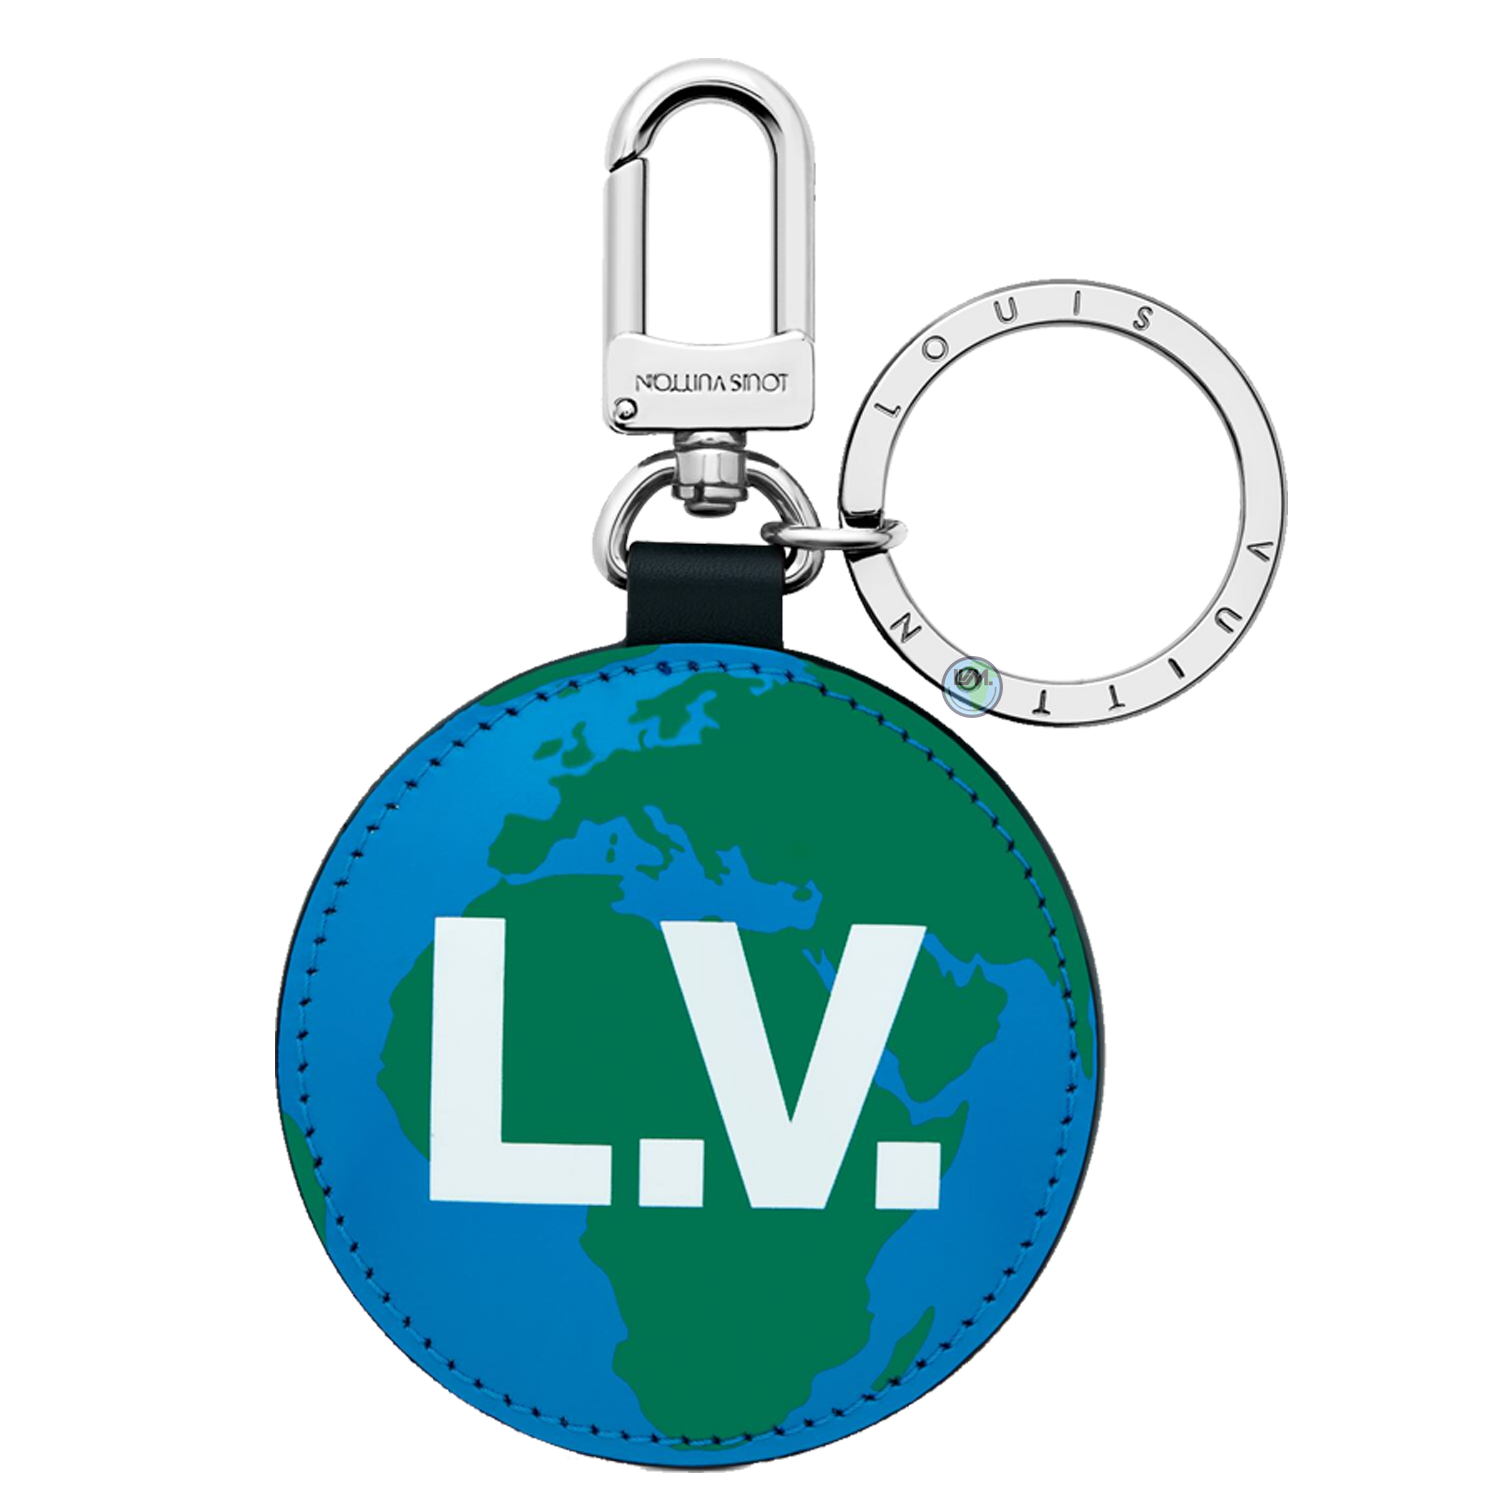 lv earth bag charm - €295 $435m68307multi